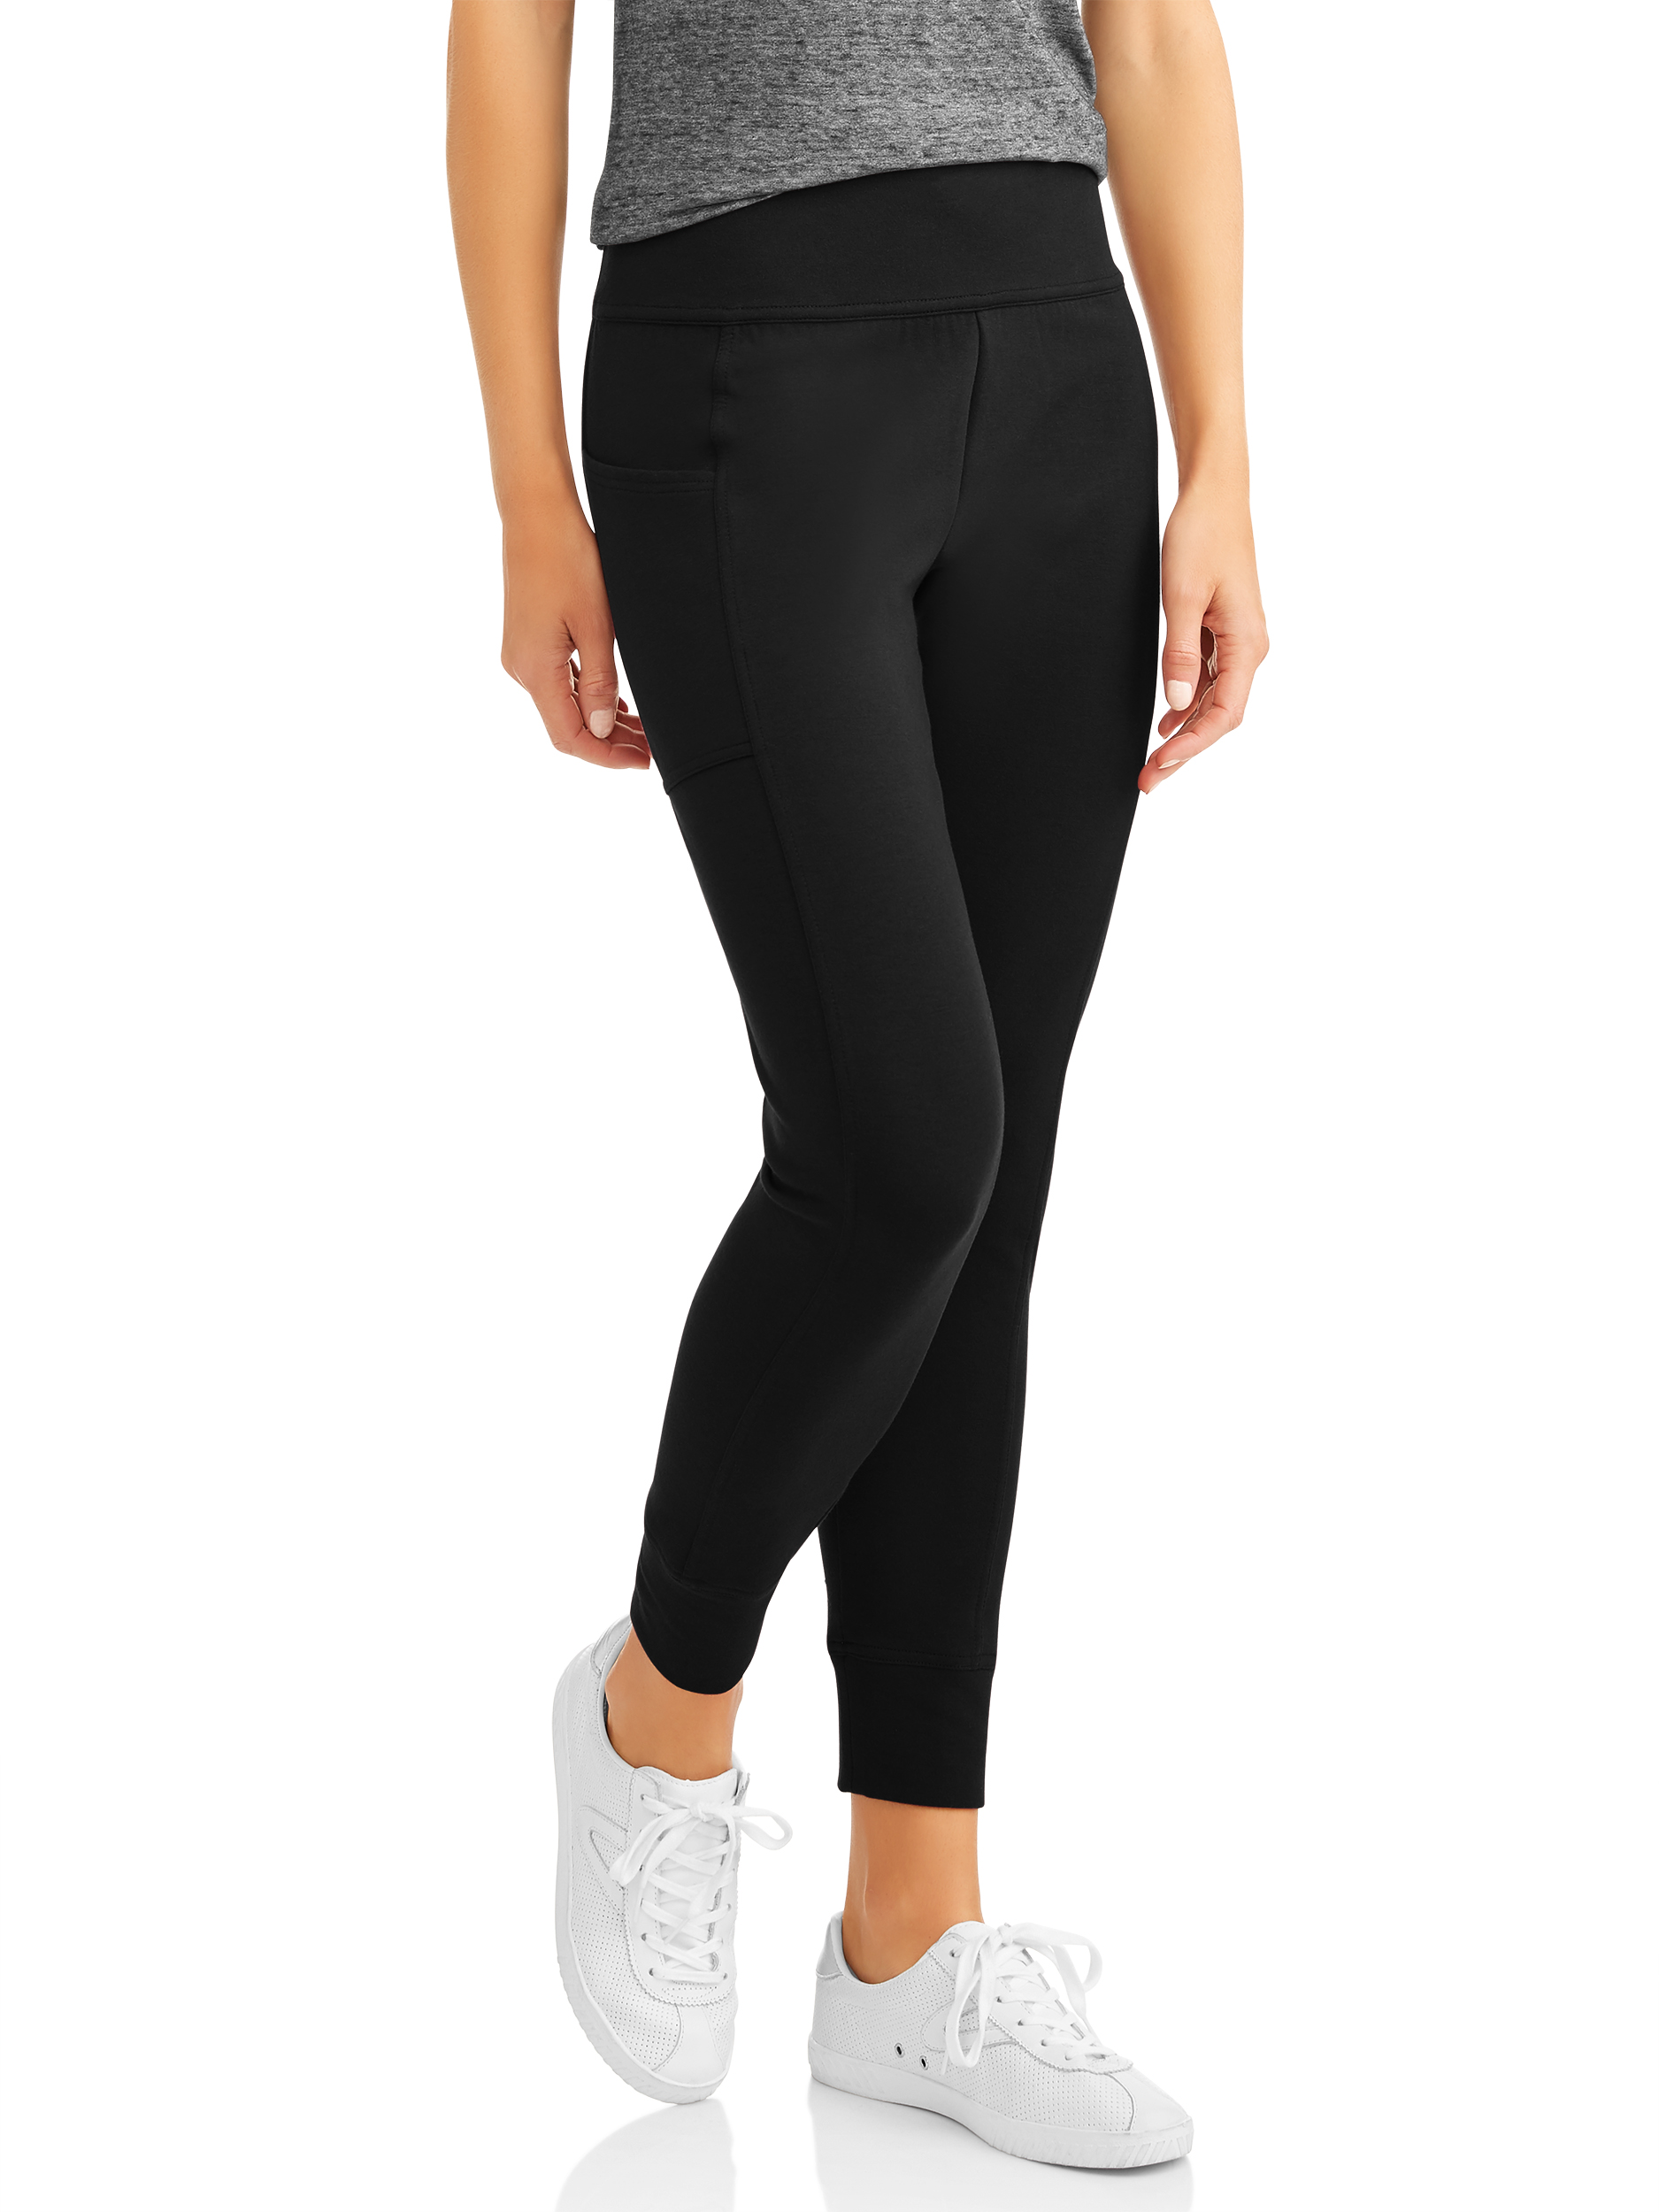 c4dec7e54c2 Check Inventory. Women s Lightweight Athleisure Jogger Pant with Media  Pocket